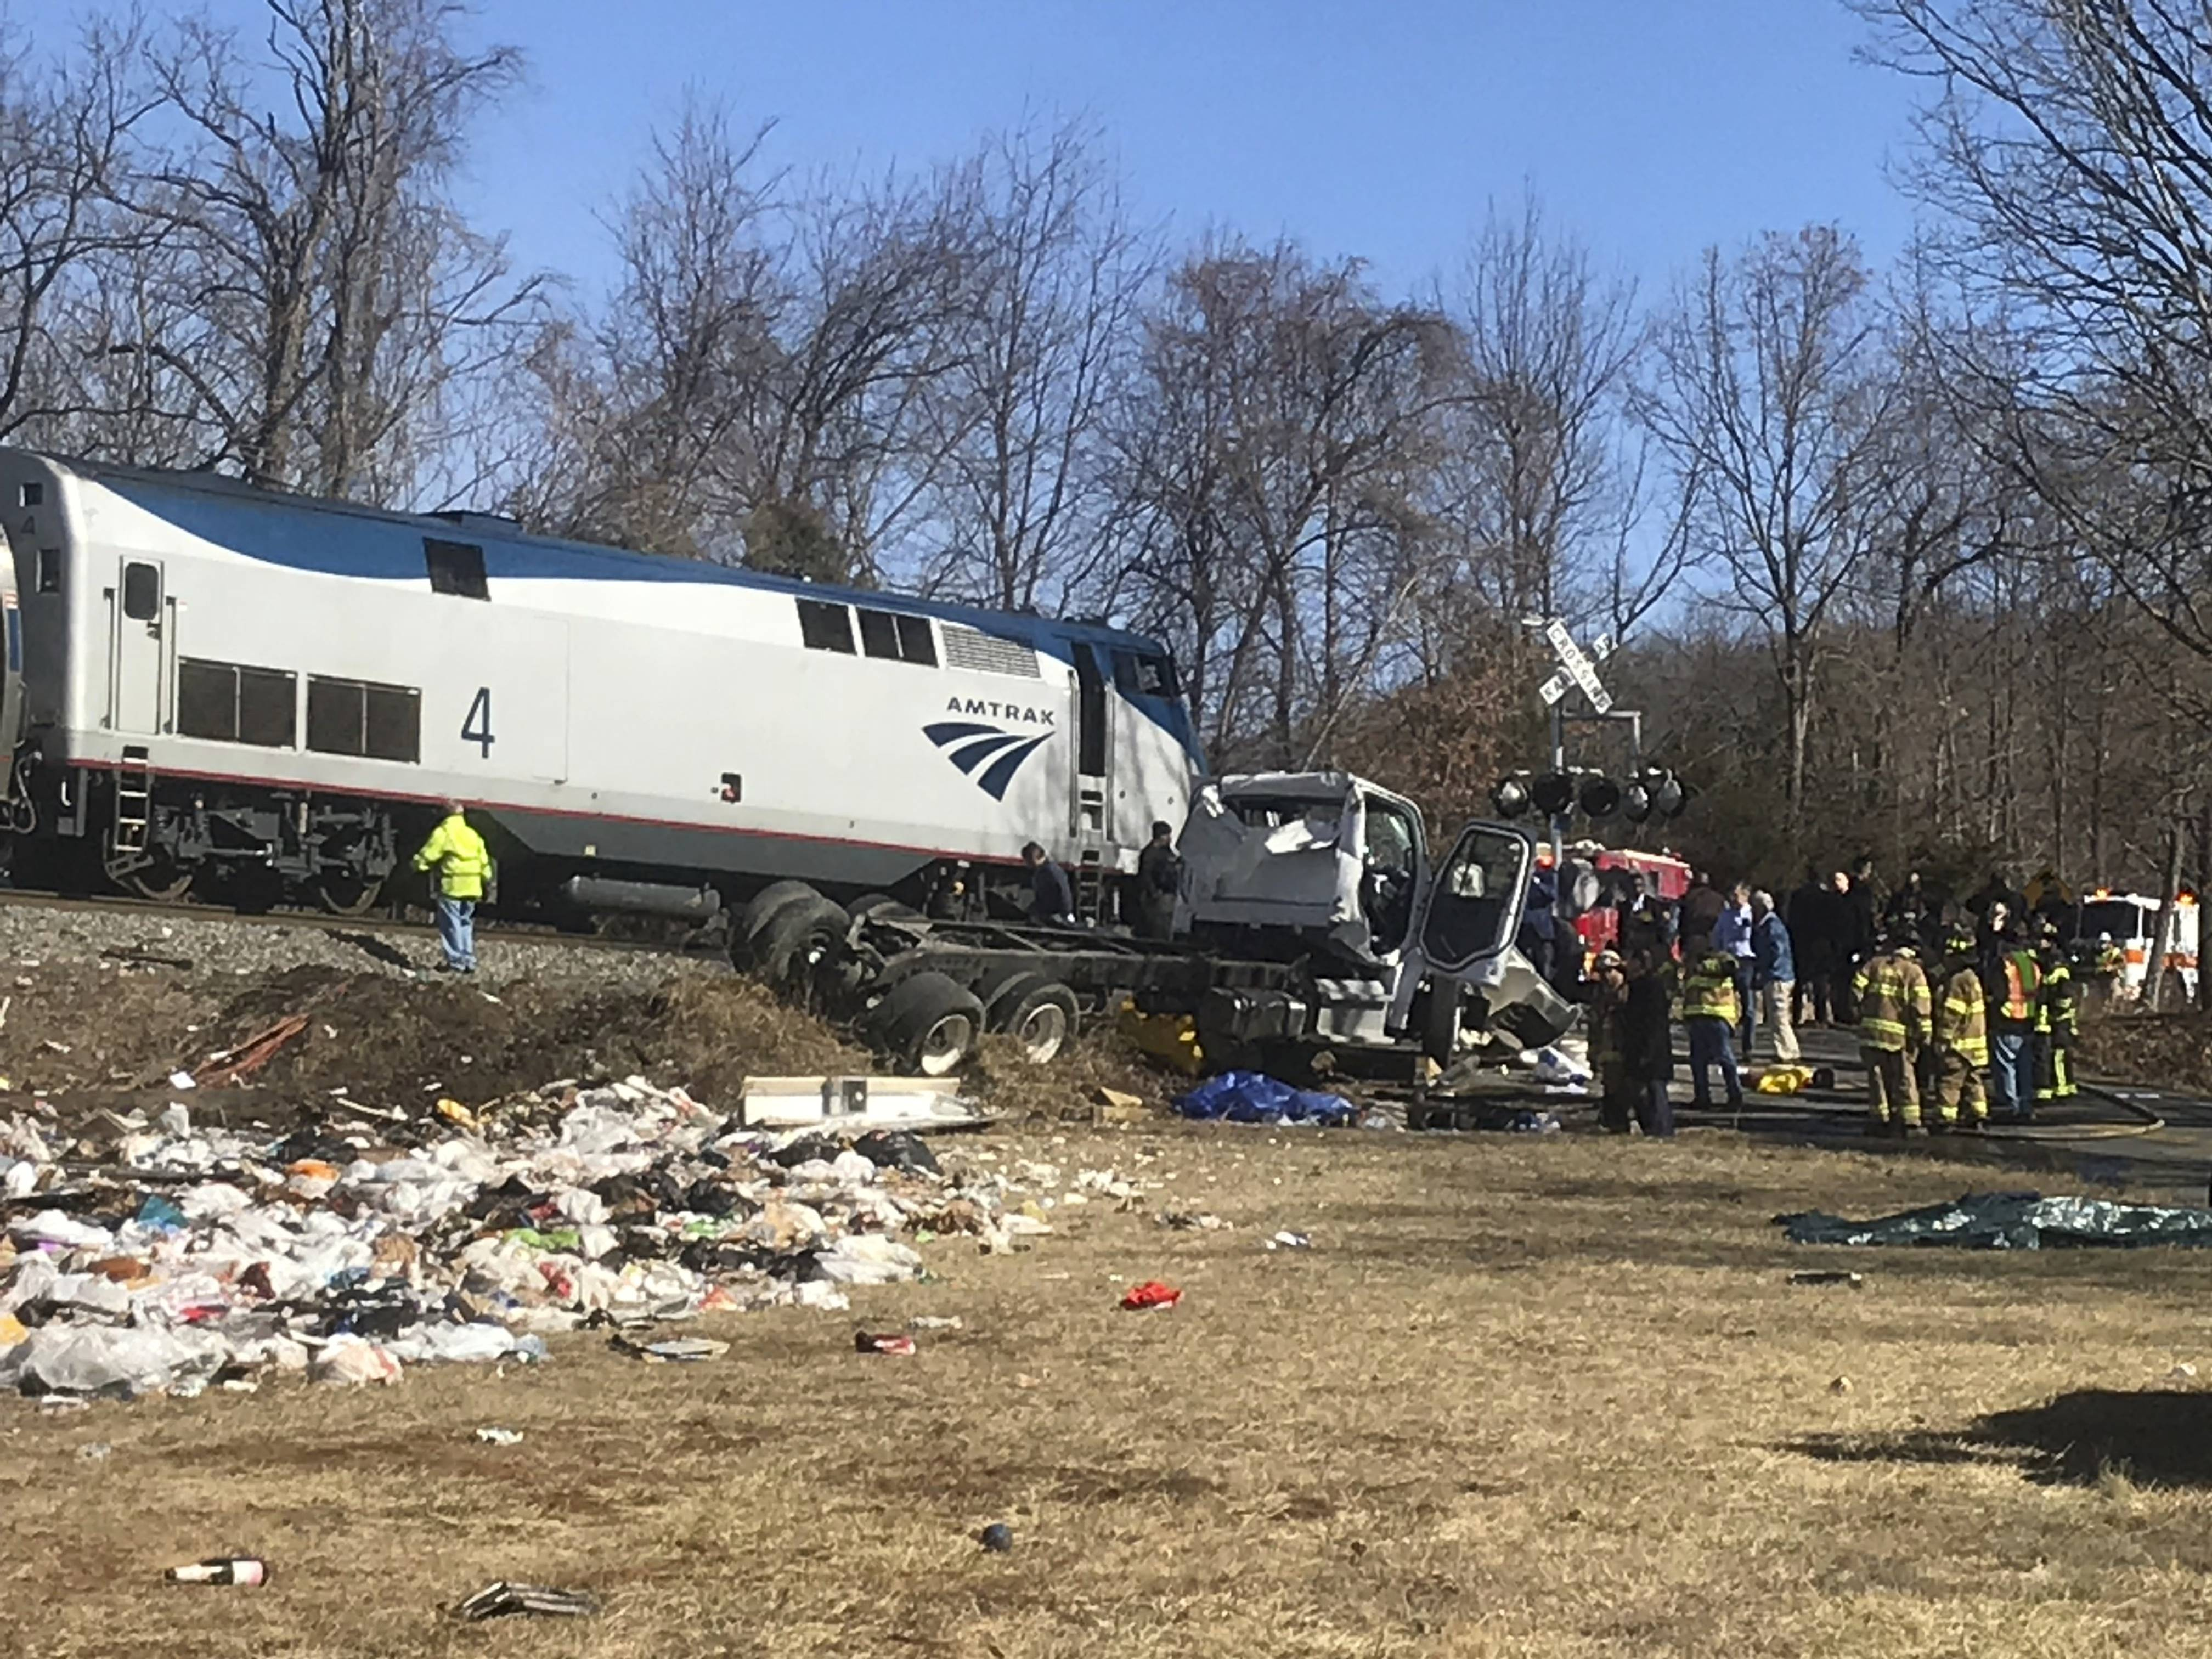 Emergency personnel work at the scene of a train crash involving a garbage truck in Crozet, Va., on Wednesday, Jan. 31, 2018. An Amtrak passenger train carrying dozens of GOP lawmakers to a Republican retreat in West Virginia struck a garbage truck south of Charlottesville, Va. No lawmakers were believed injured, but it at least one person in the truck was said to be seriously injured. (Allison Wrabel/ The Daily Progress via AP)